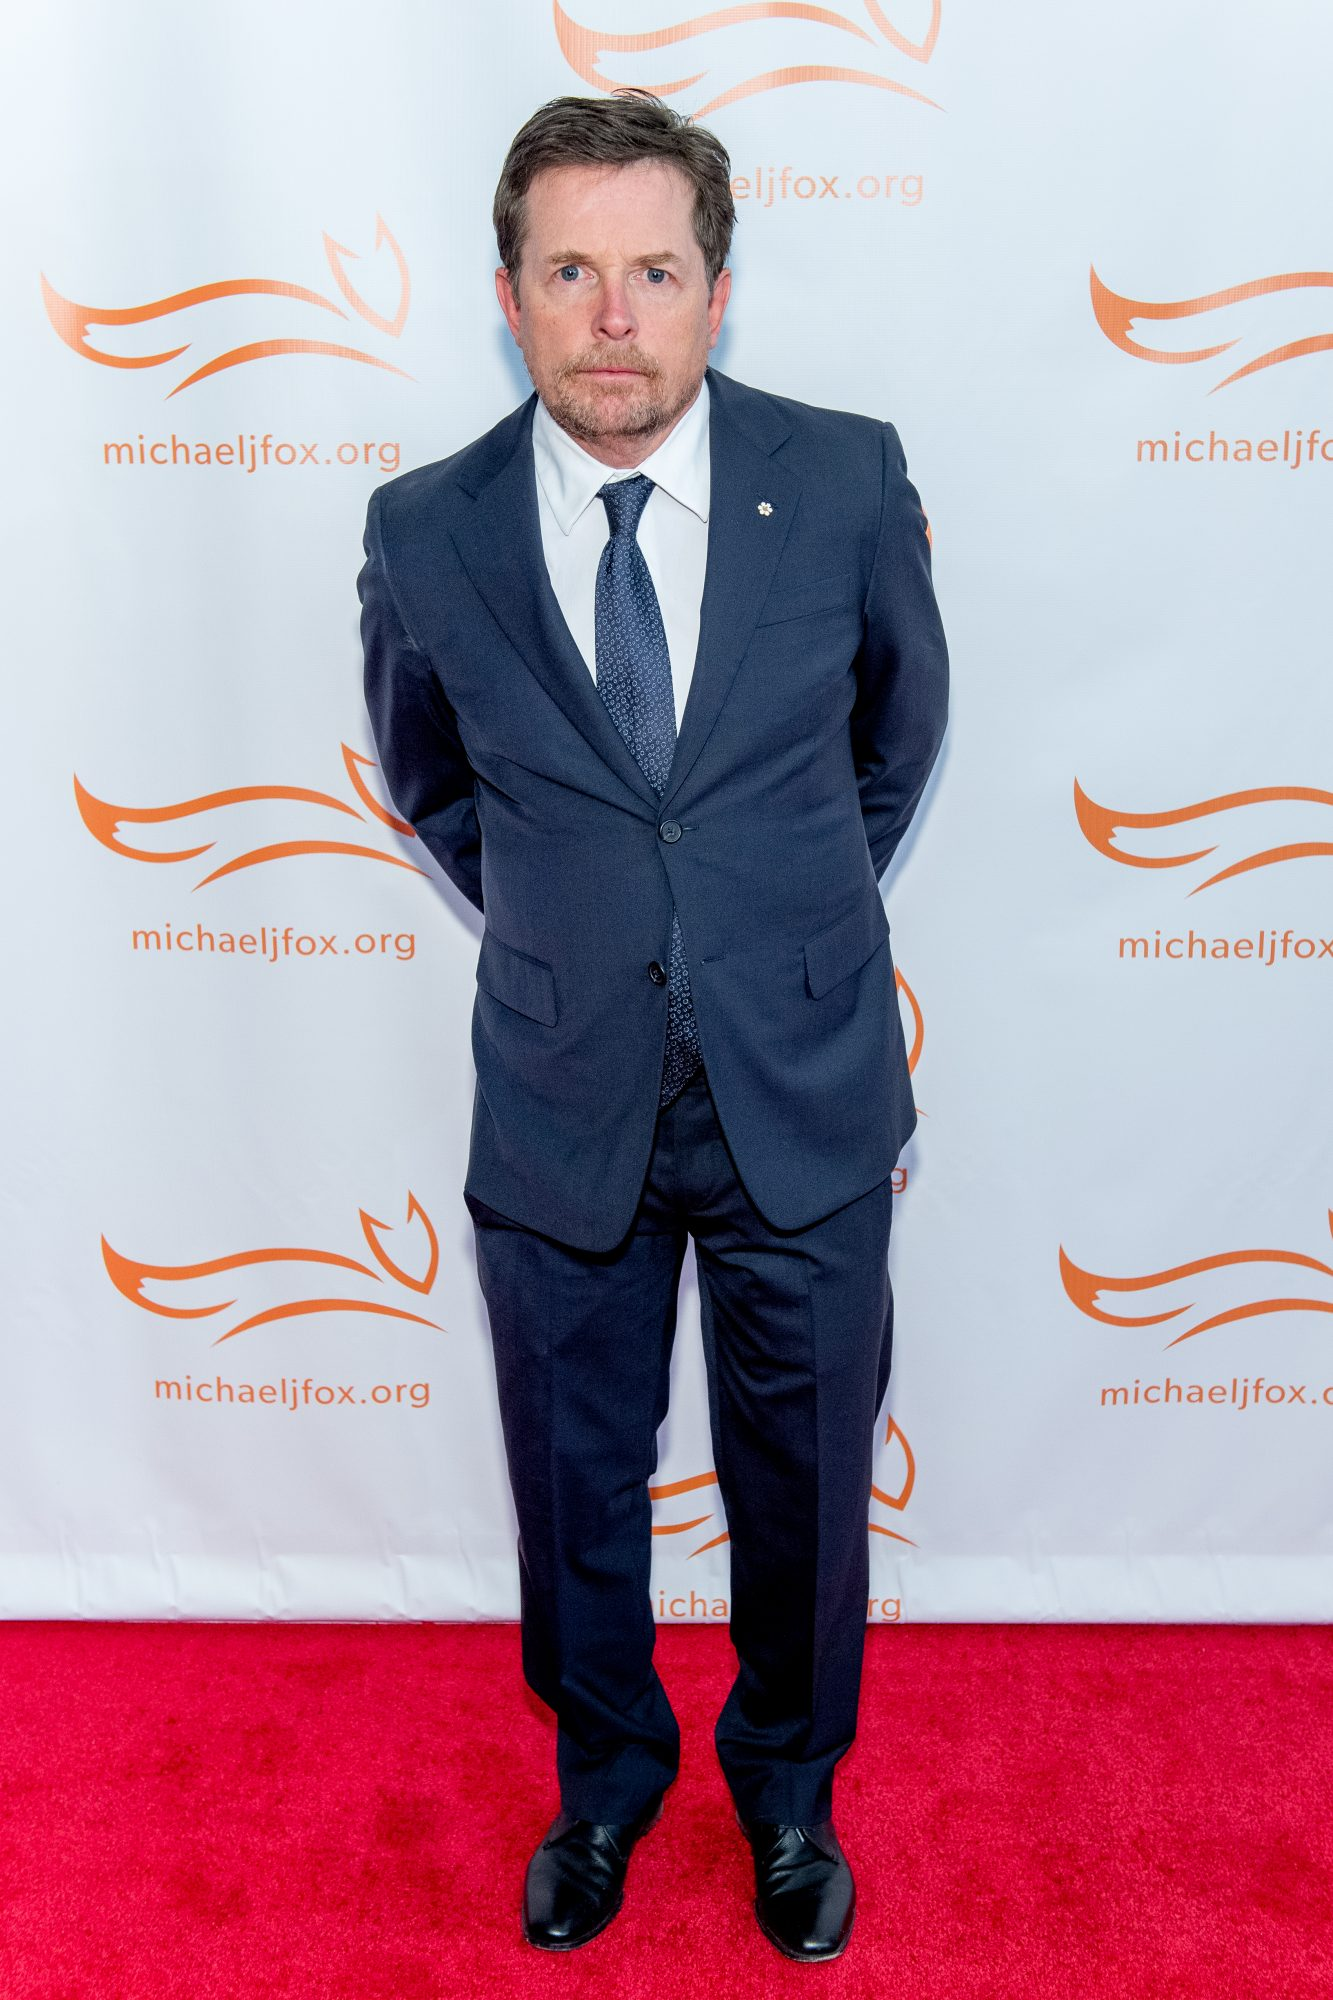 Michael J. Fox Undergoes Spinal Surgery: 'He Is Recovering and Feeling Great'